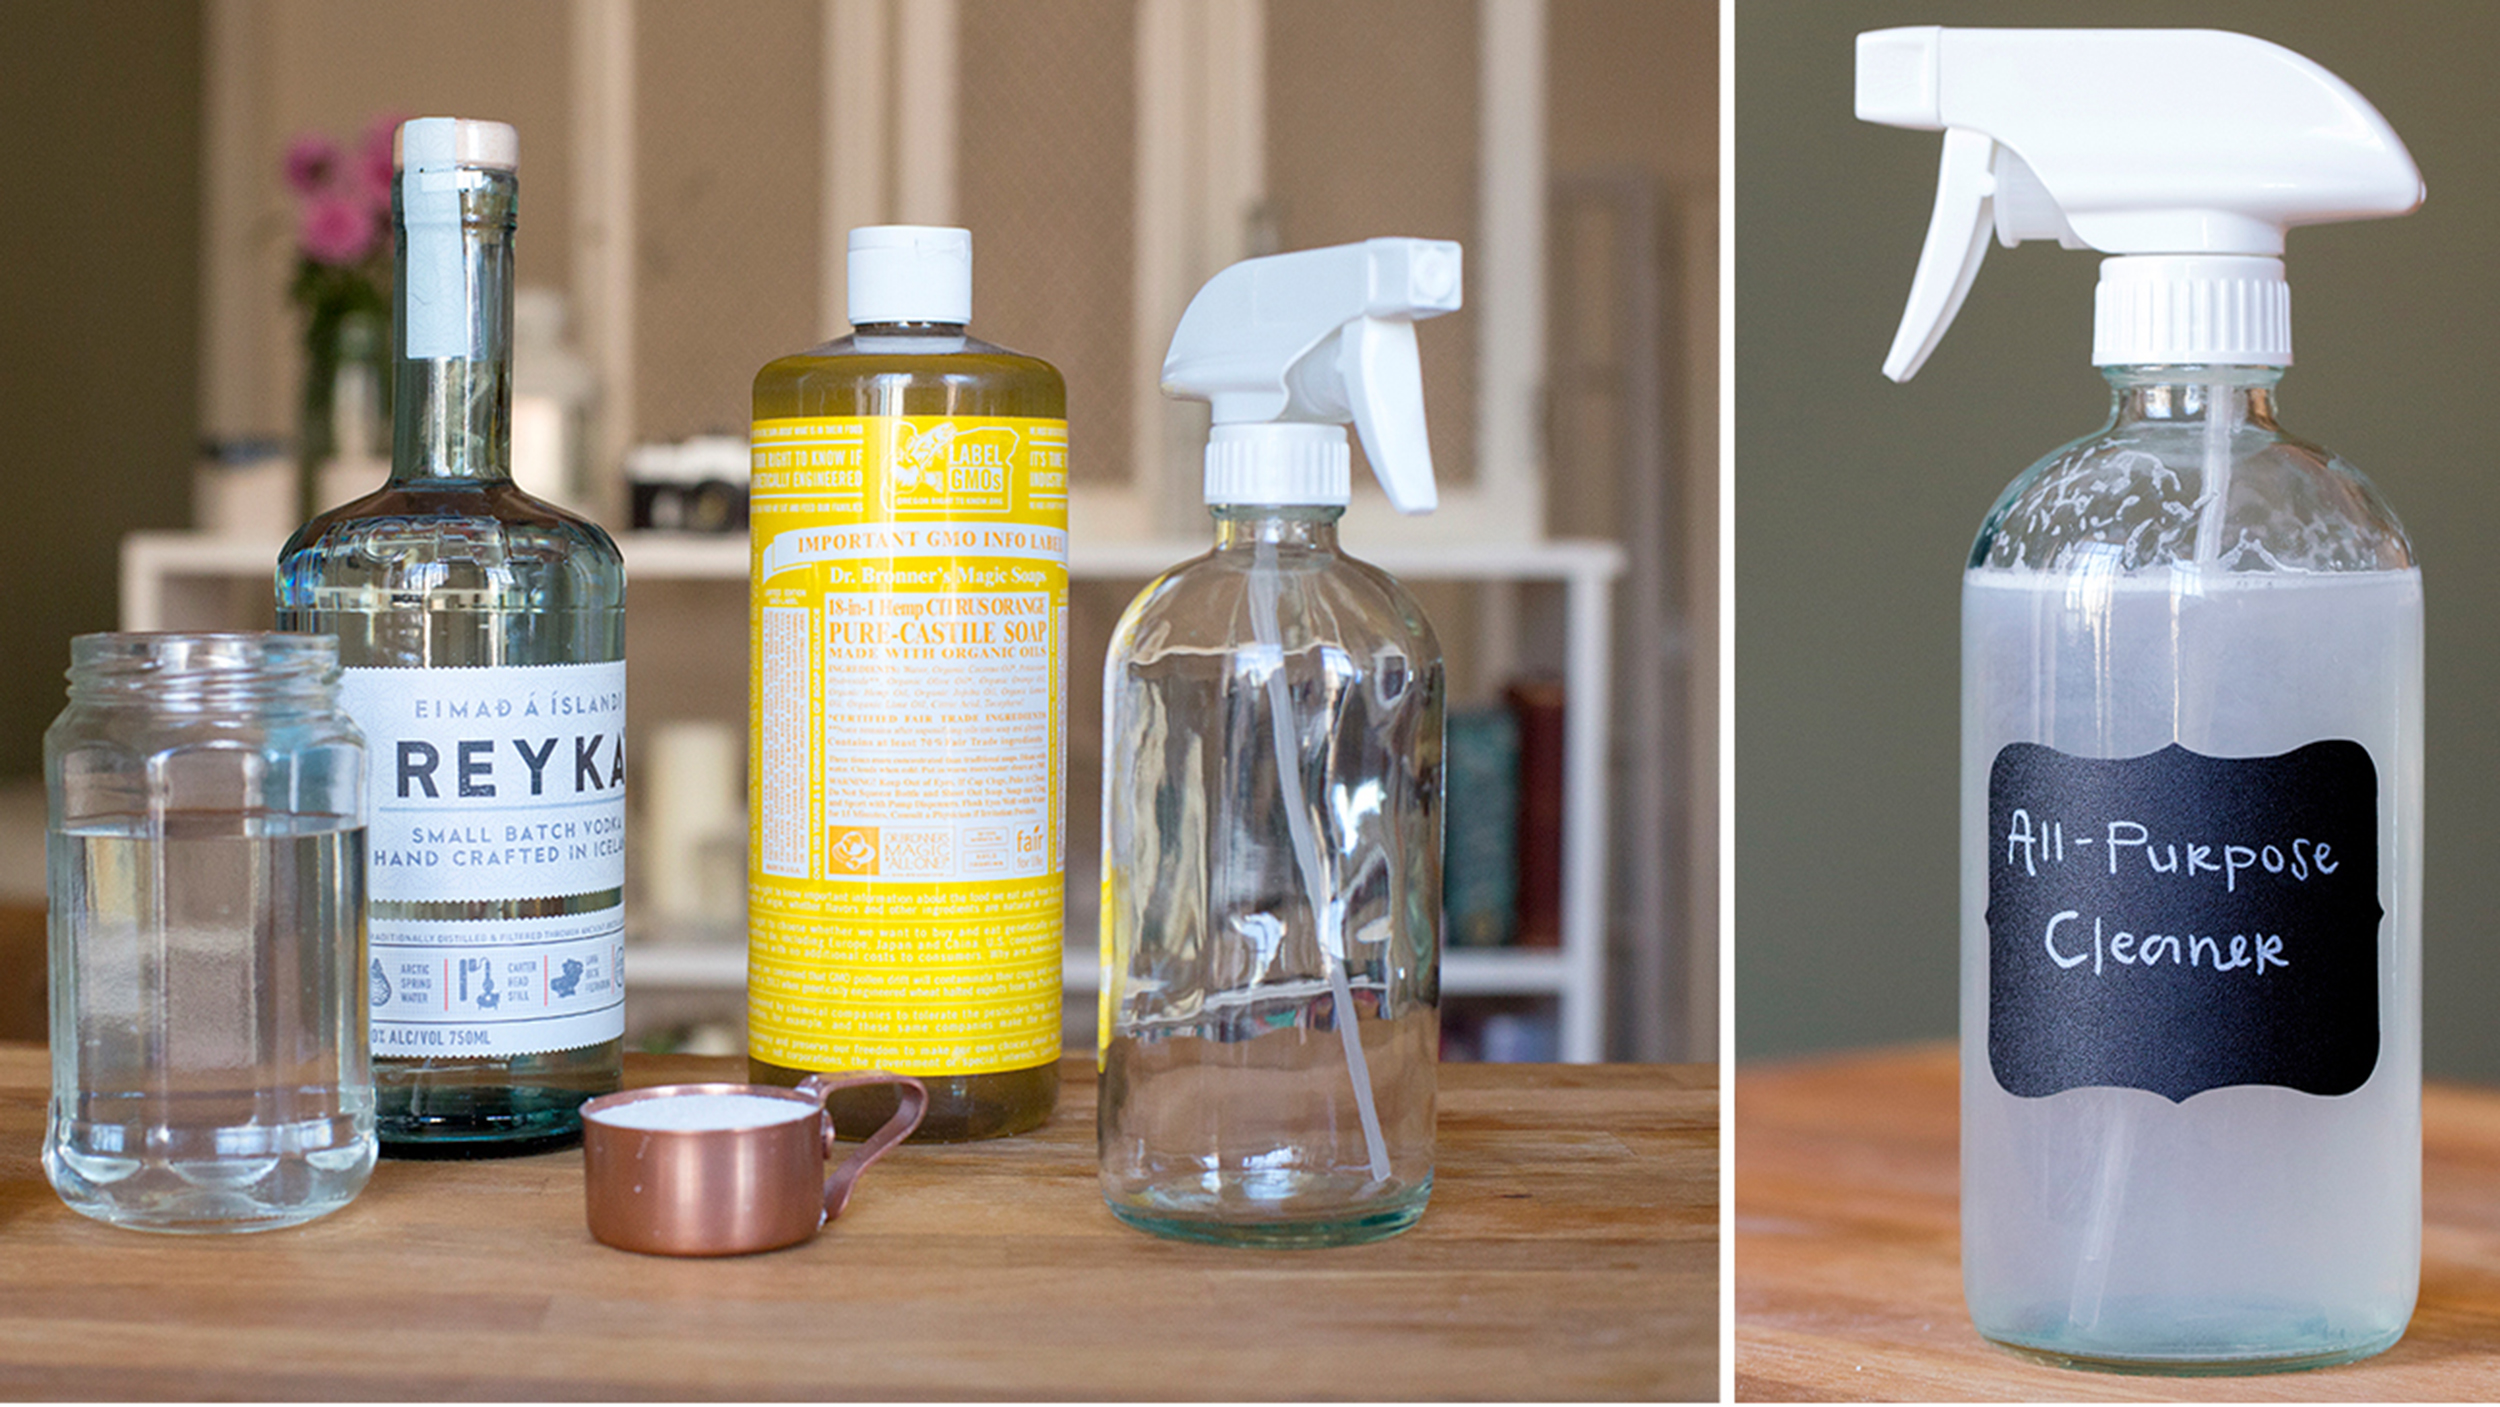 It's easier than you think! DIY all-purpose cleaner you can make in 5 minutes